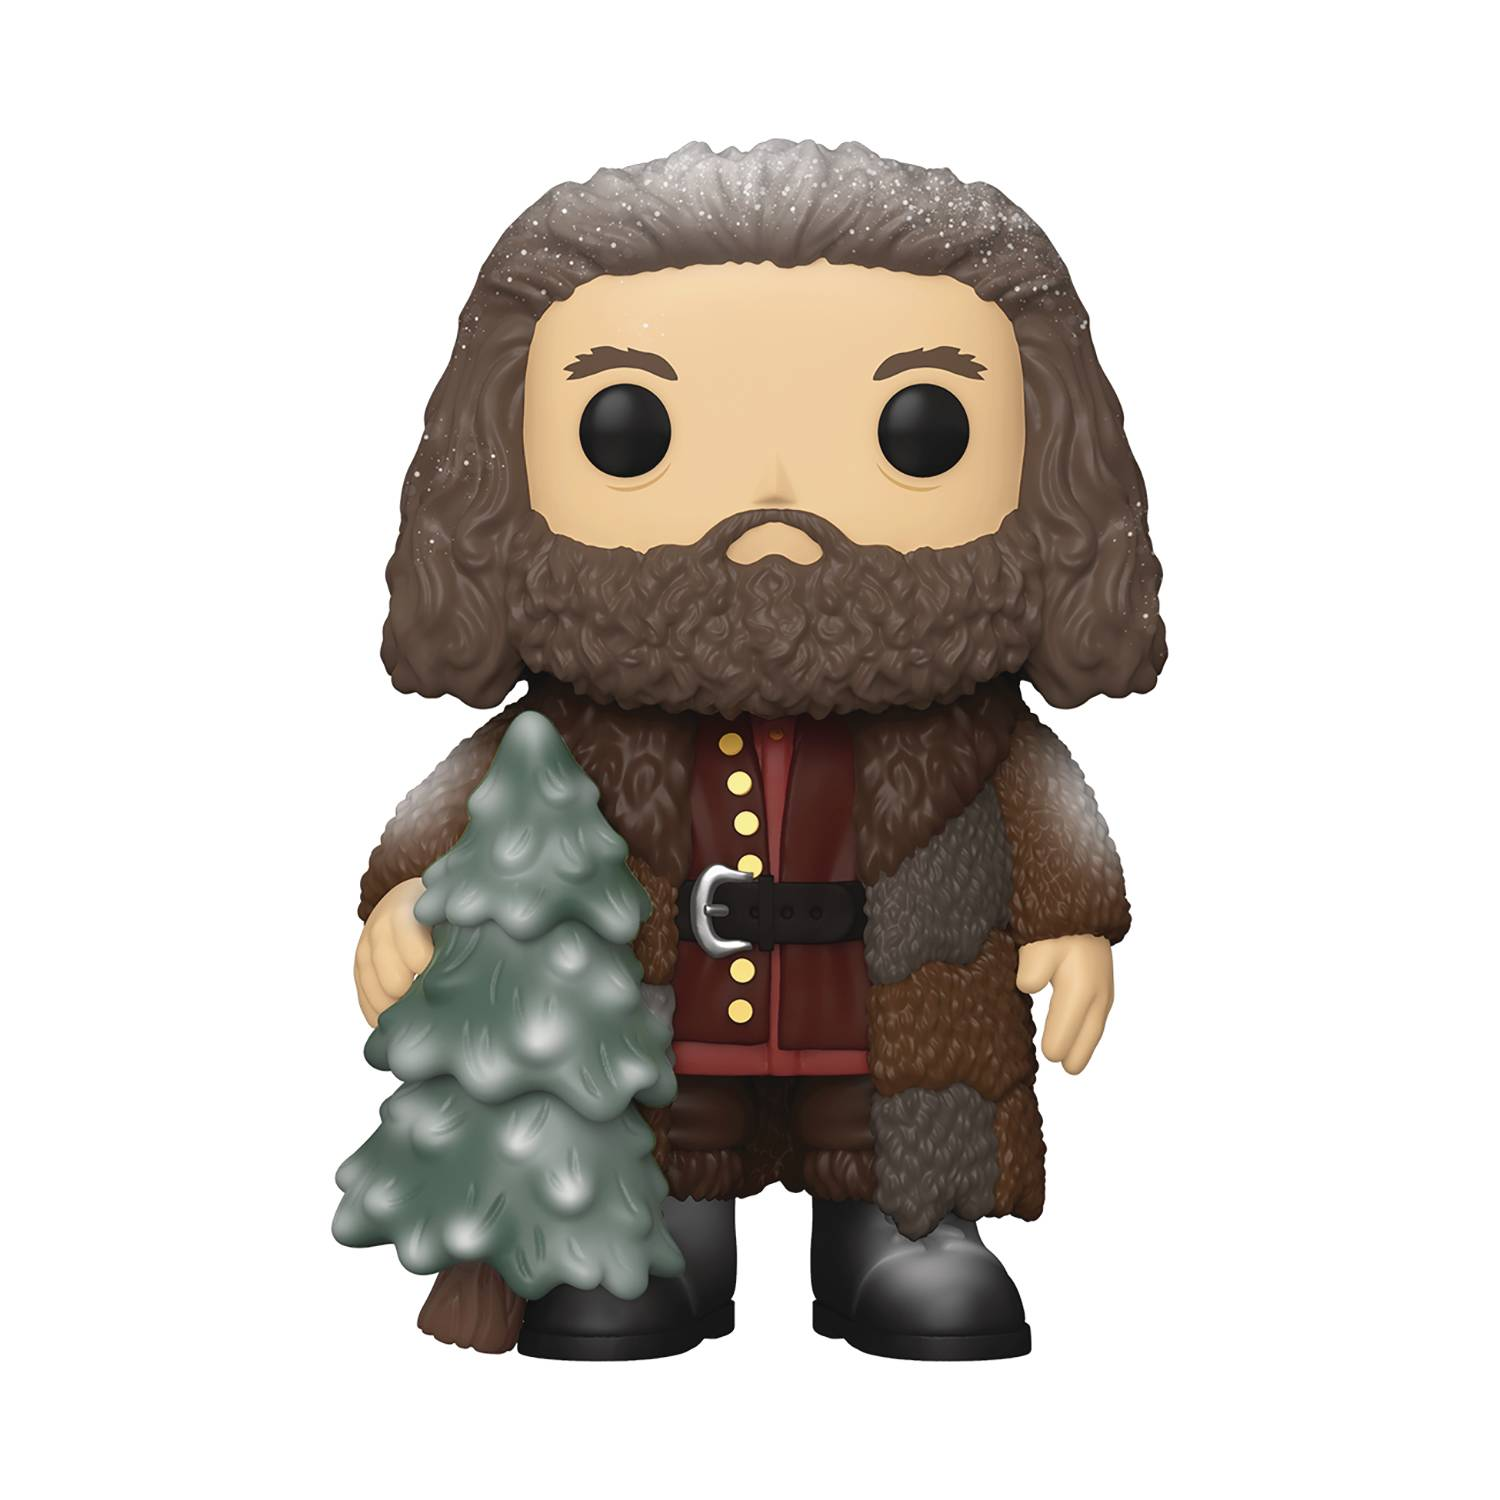 POP HARRY POTTER HOLIDAY HAGRID 6IN VIN FIG (O/A)